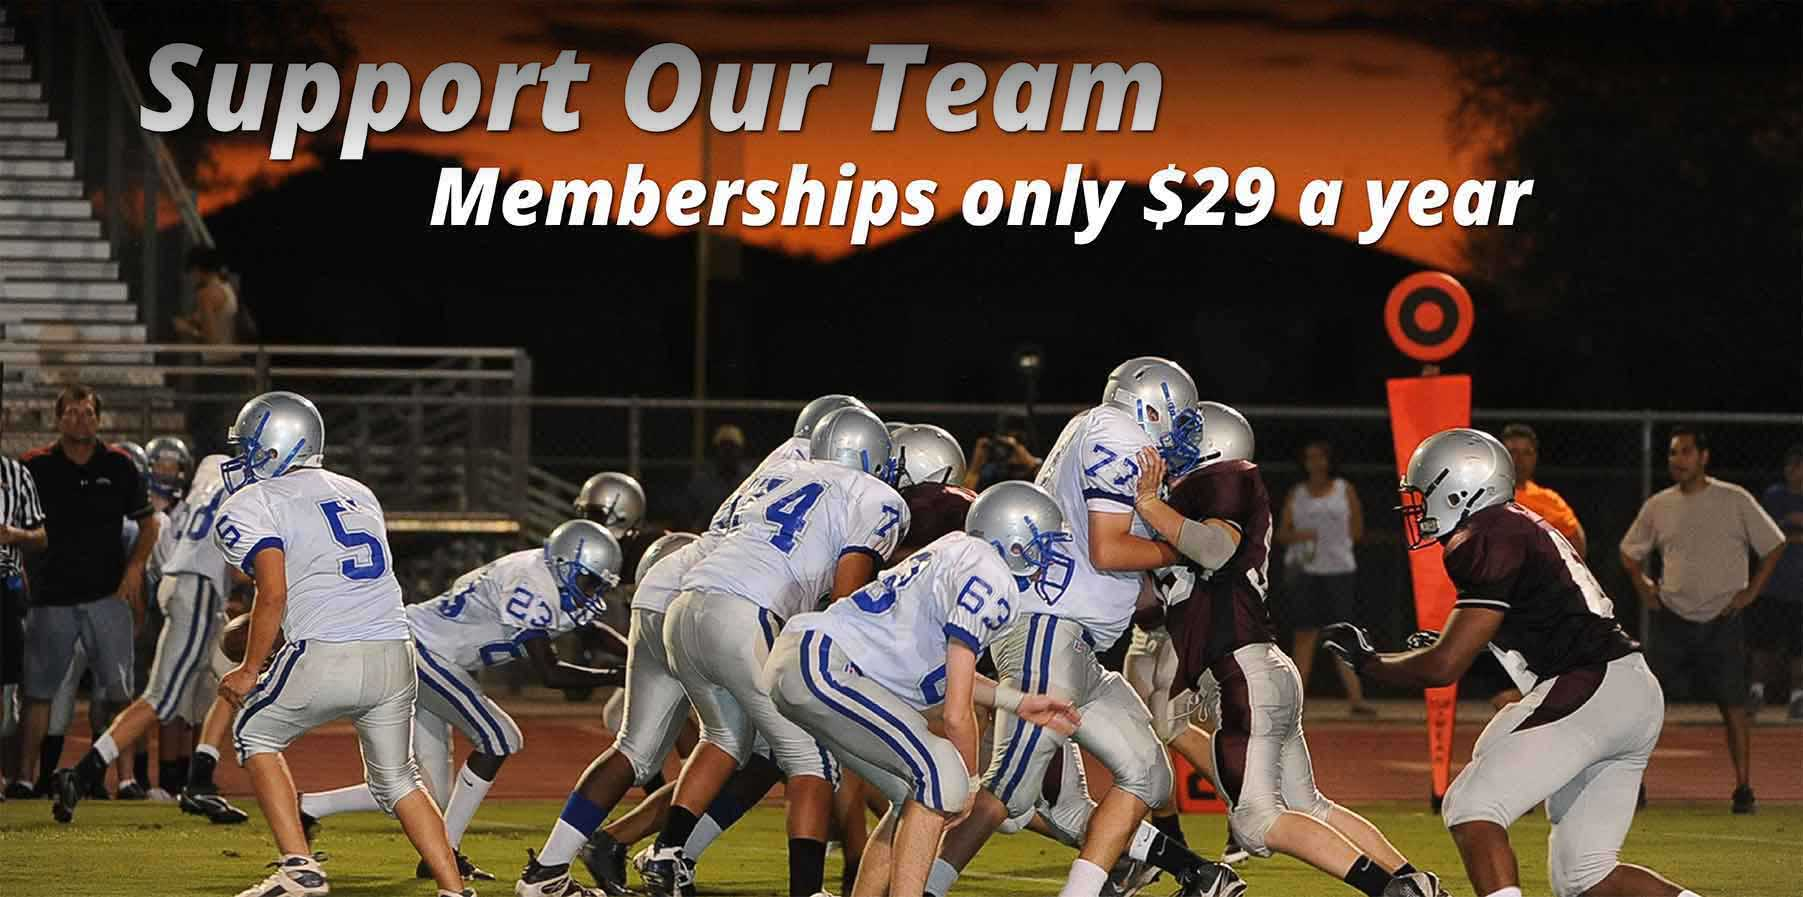 Support Our Team